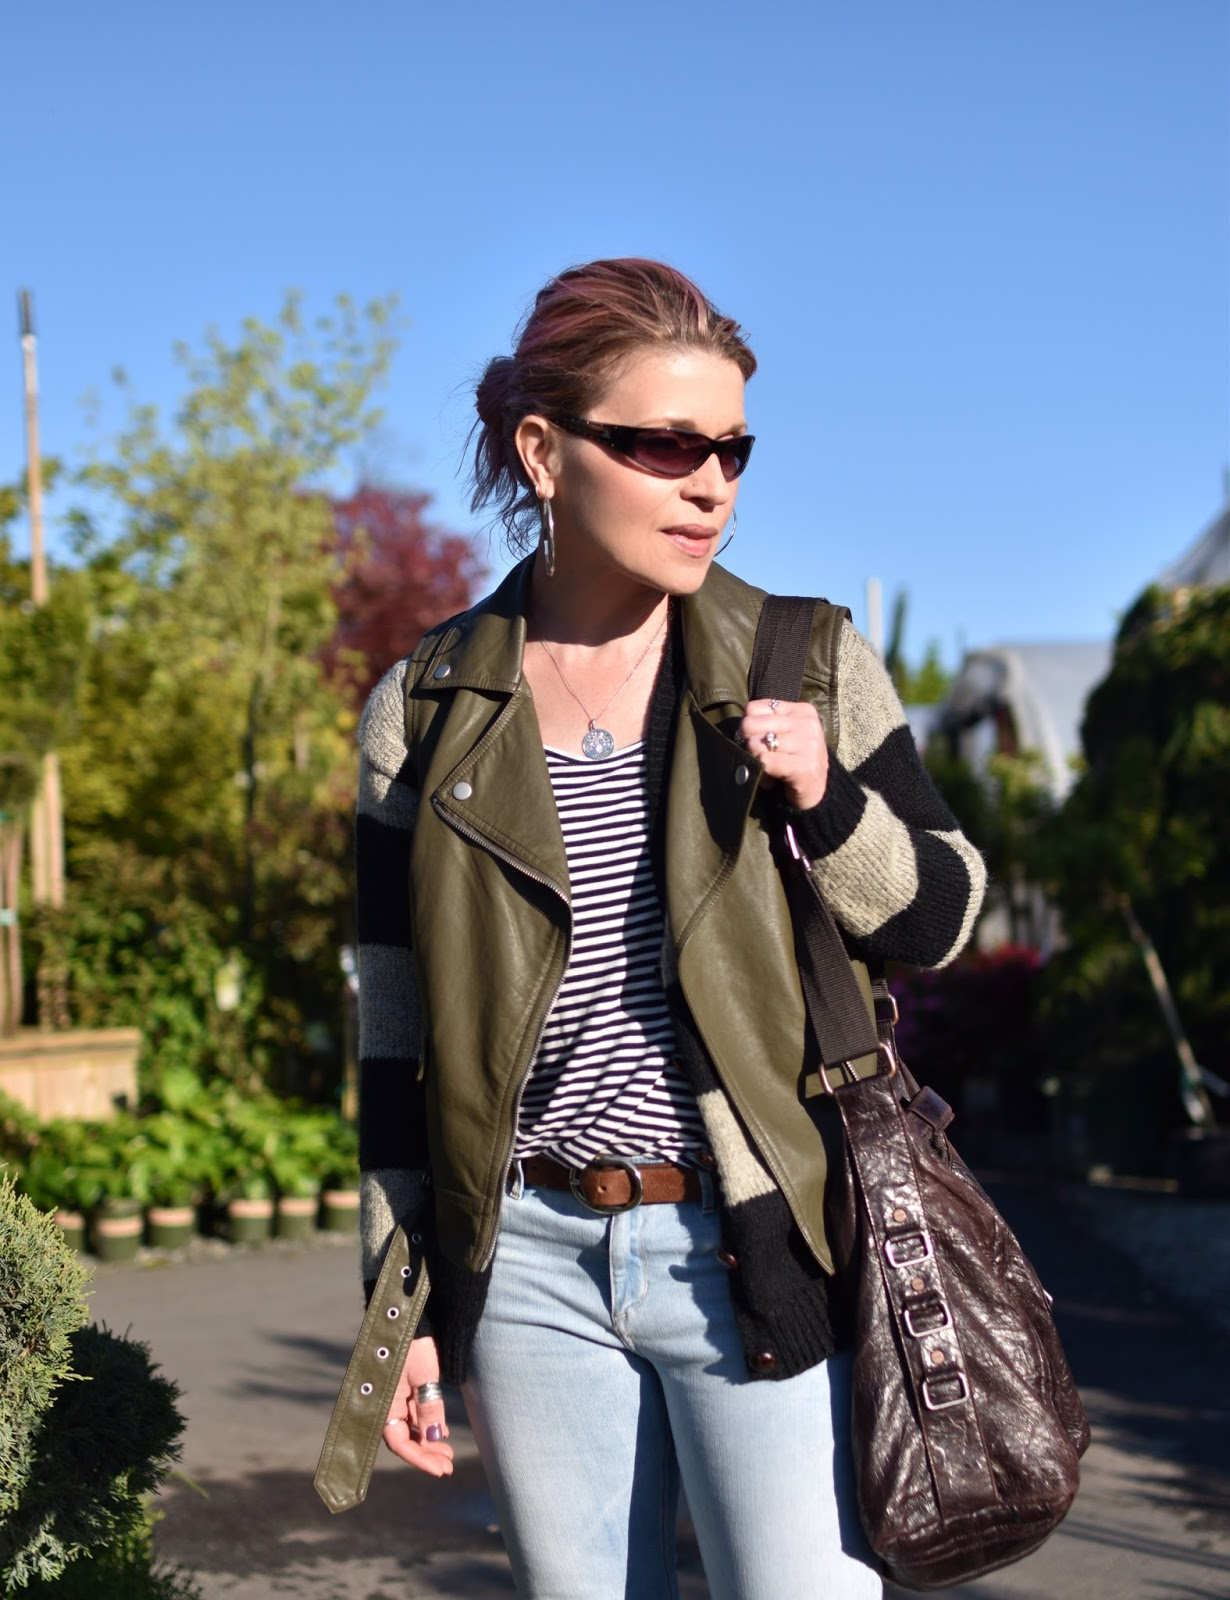 Monika Faulkner outfit inspiration - striped tee, striped cardigan, olive moto vest, sunglasses, matt & nat bag